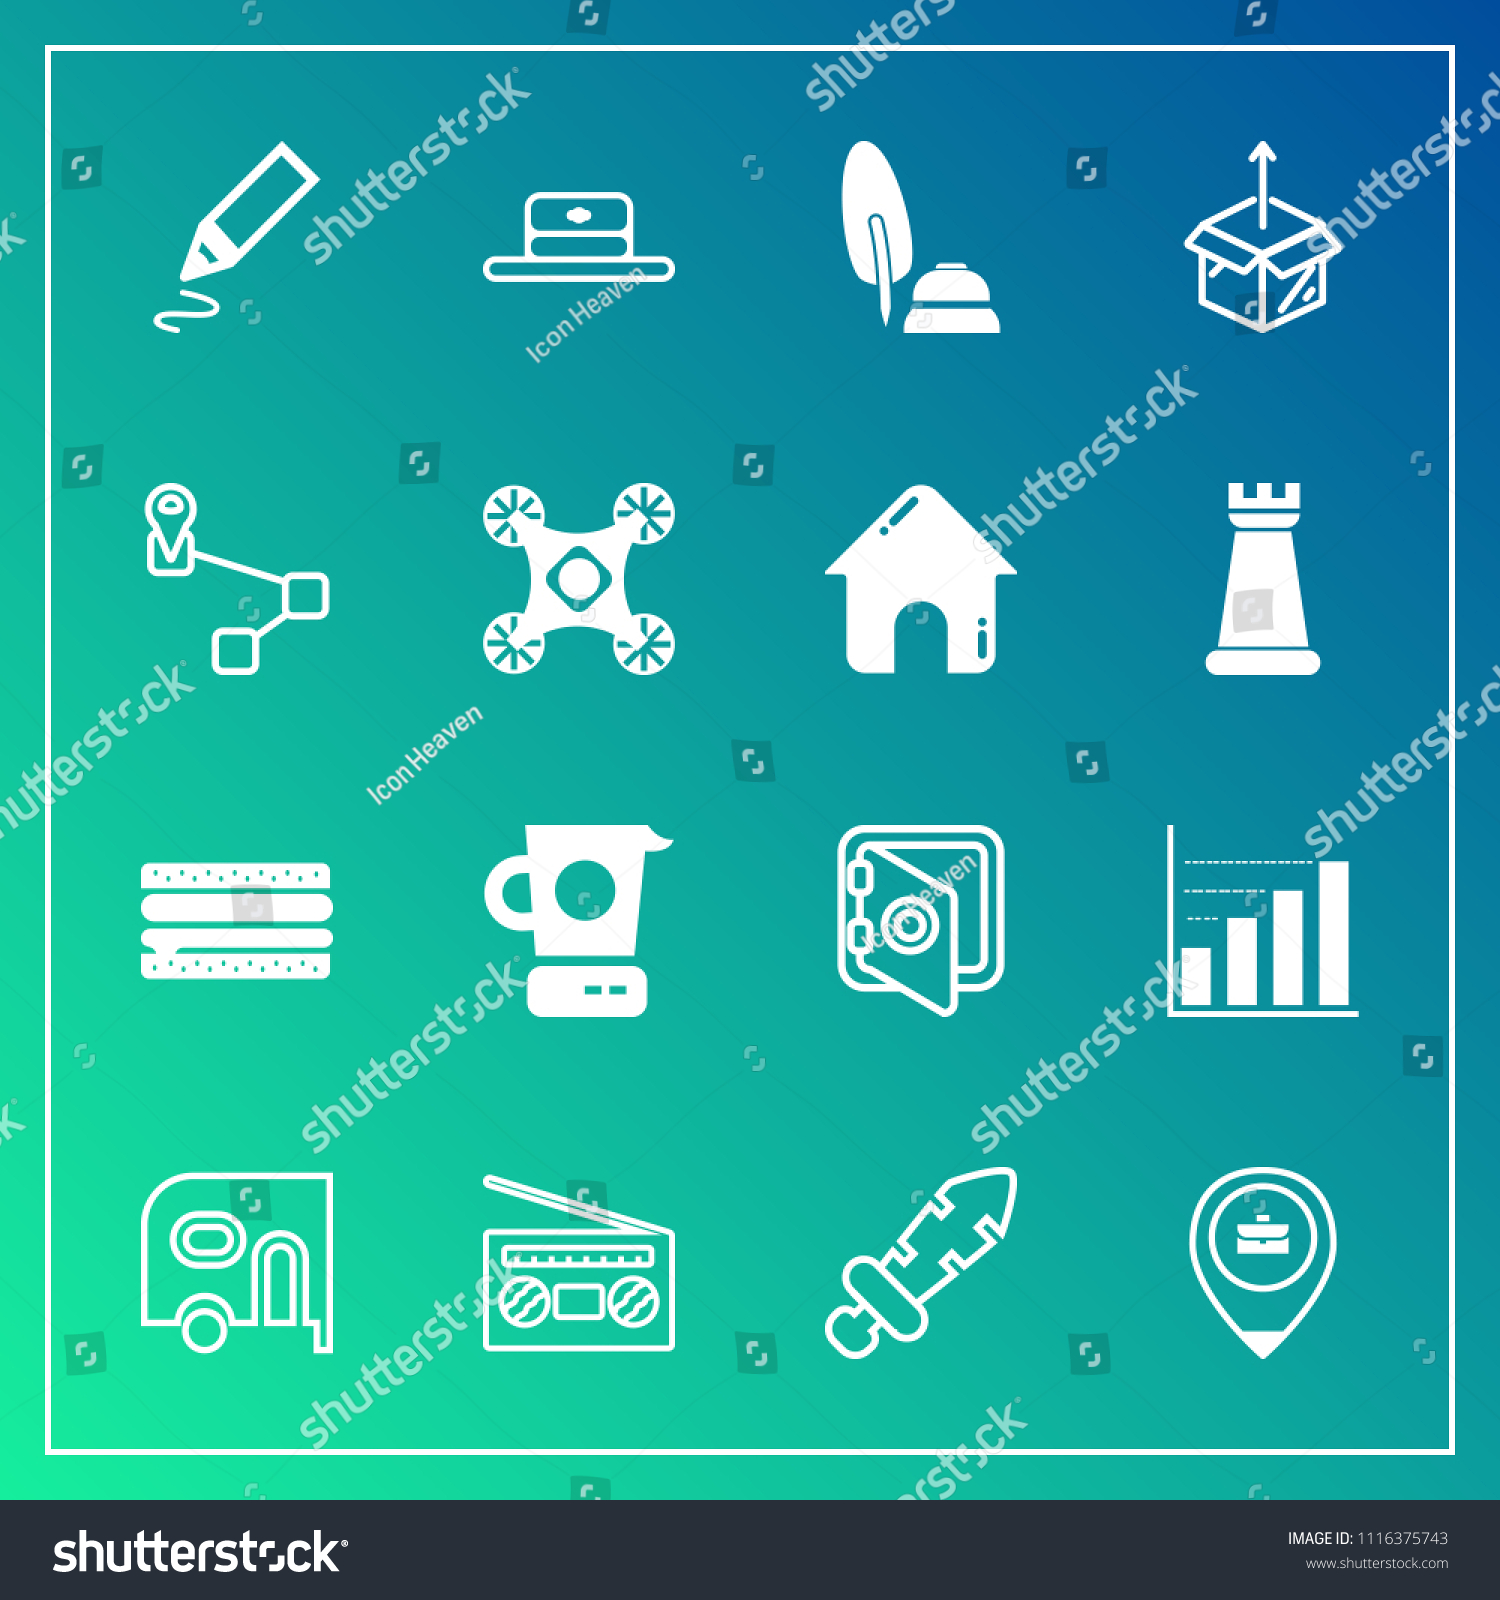 Modern Simple Vector Icon Set On Stock Vector 1116375743 - Shutterstock